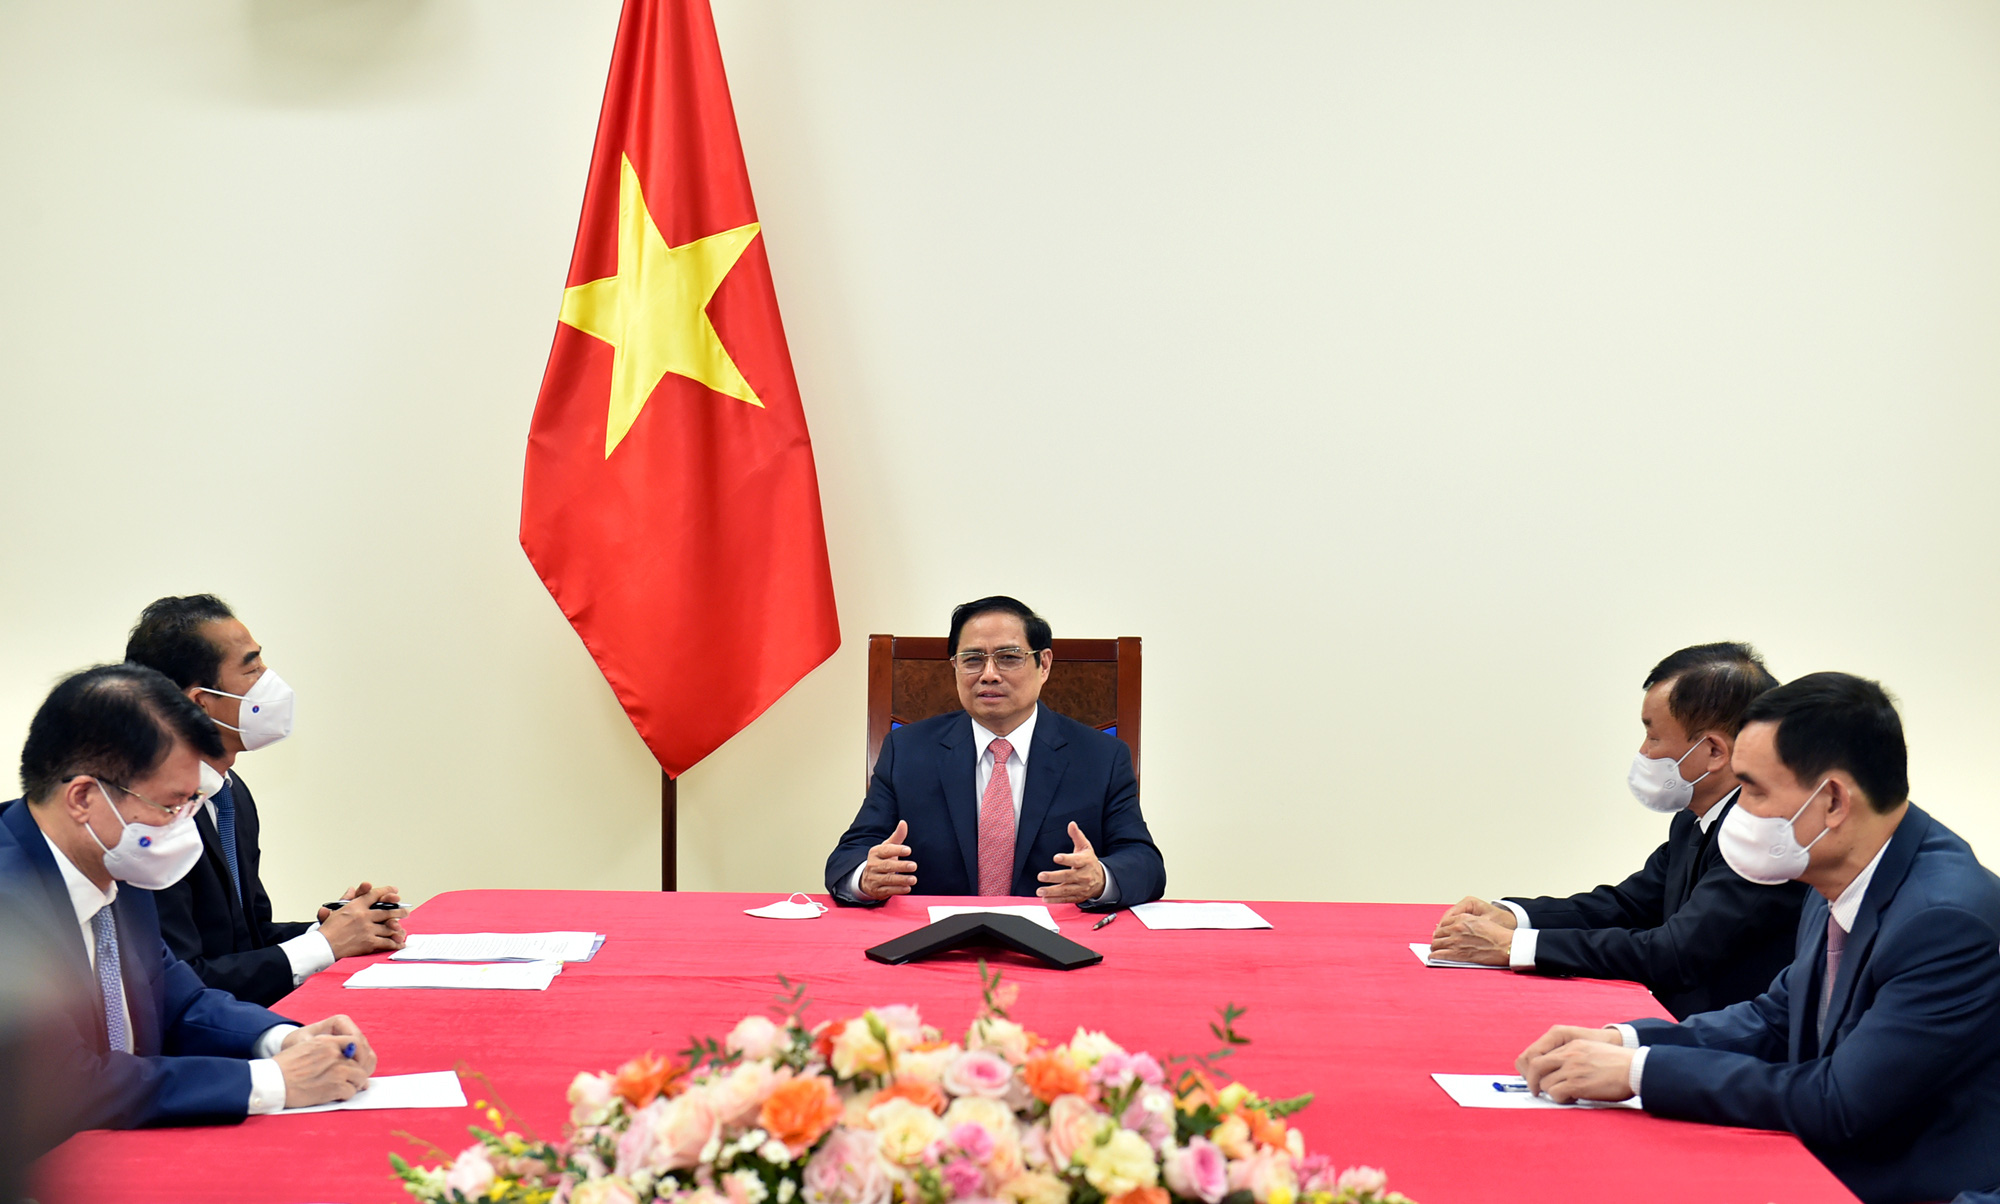 Czech government willing to transfer 500,000 COVID-19 vaccine doses to Vietnam